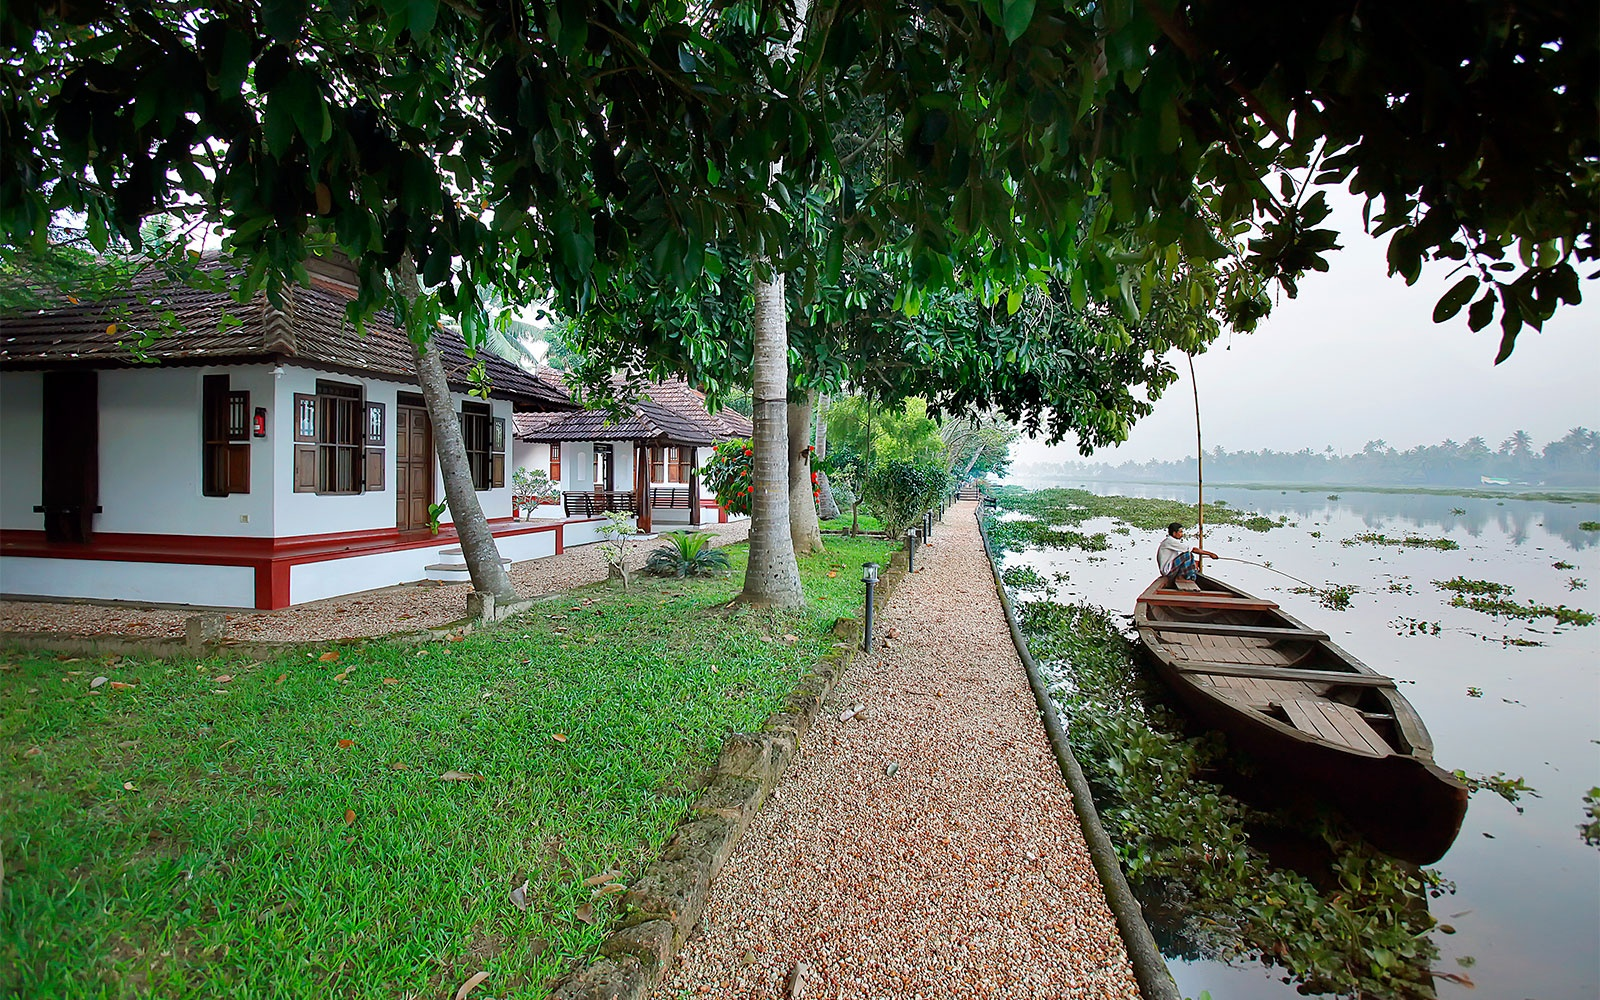 cottages by the river in Philipkutty's Farm, Kerala, India